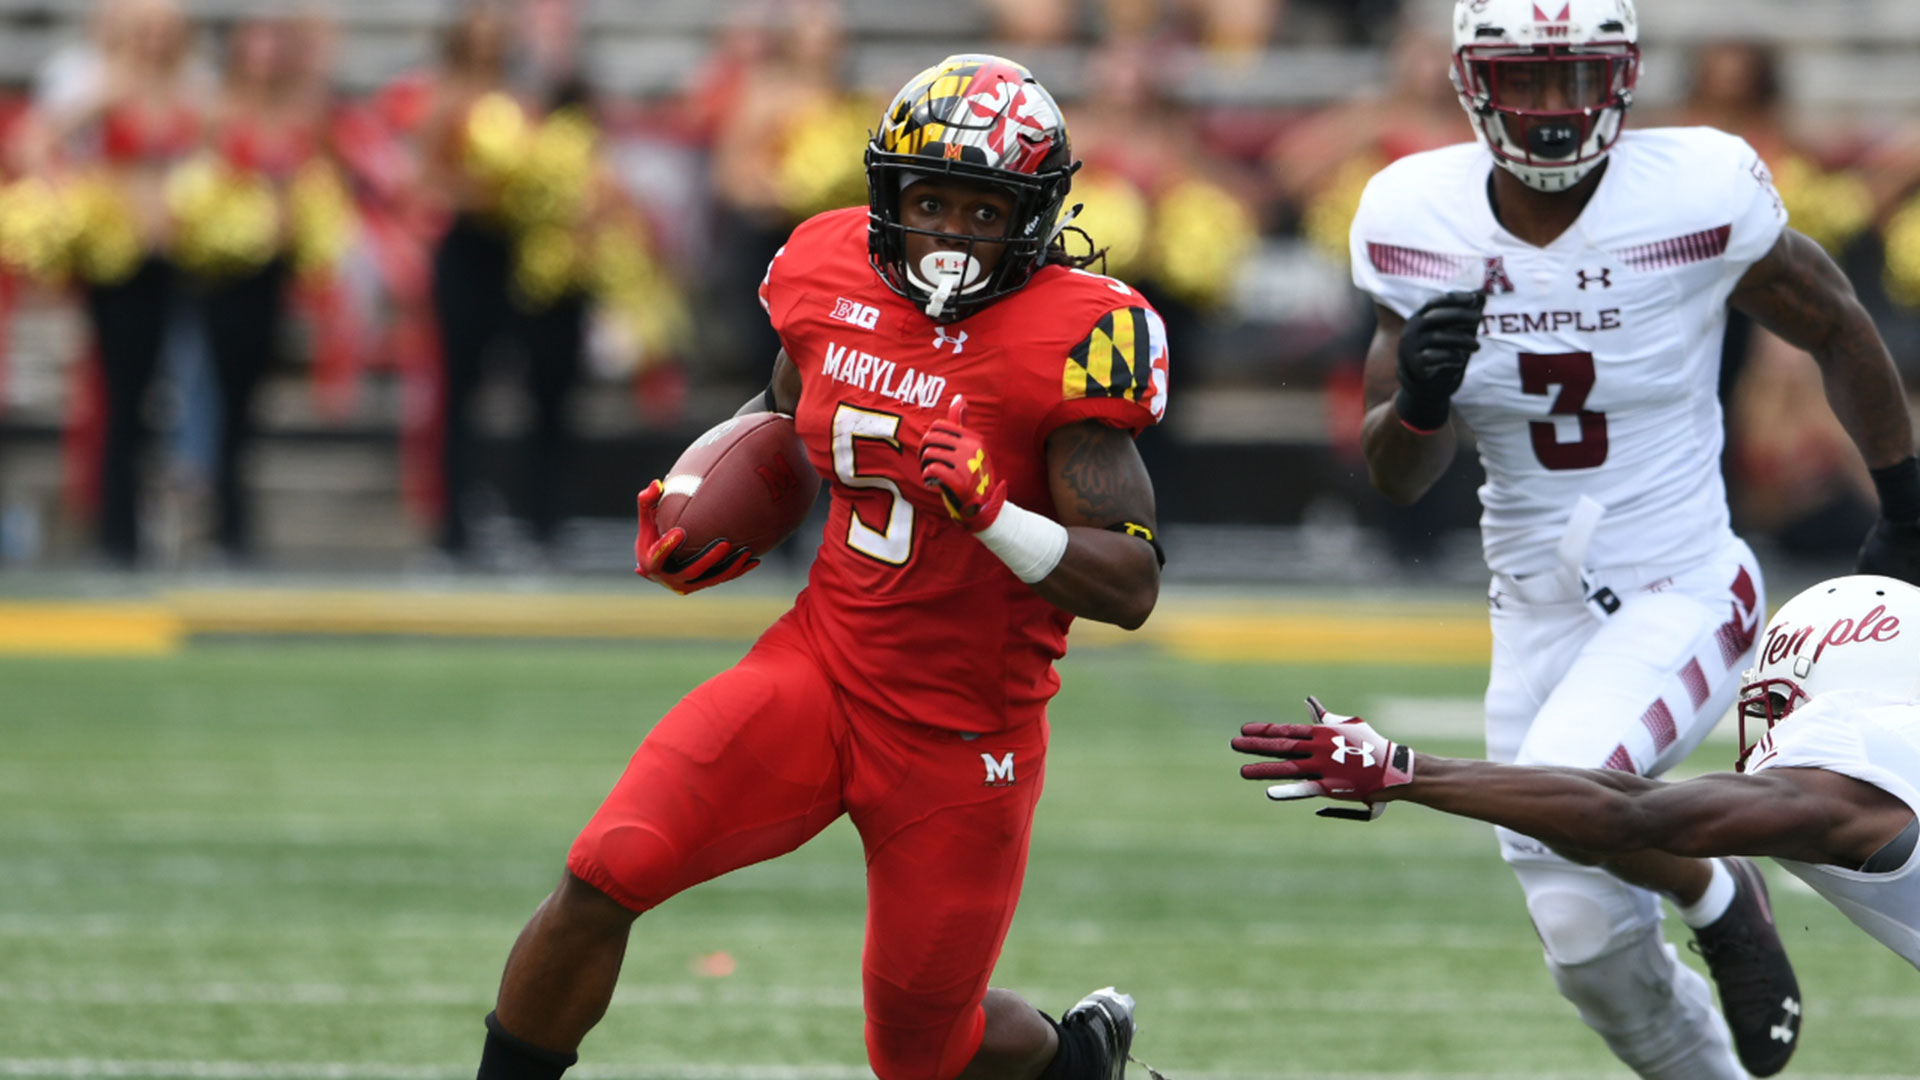 terps fall to temple in home opener - university of maryland athletics